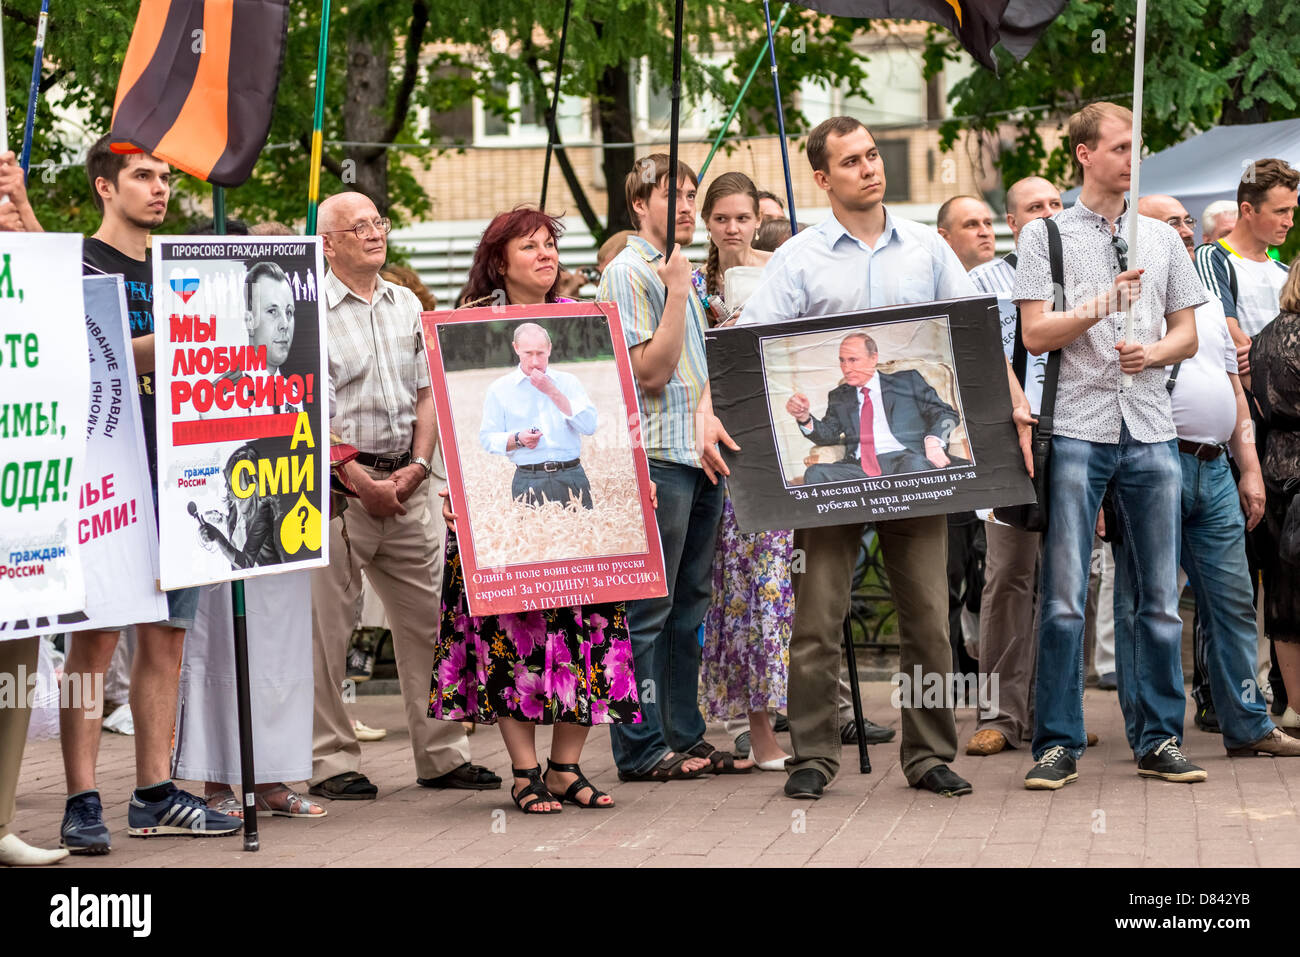 Moscow, Russia. 18th May, 2013. Pro-Putin meeting 'Mass Media - Stop Lying!' in Moscow, Russia. Placards - Stock Image